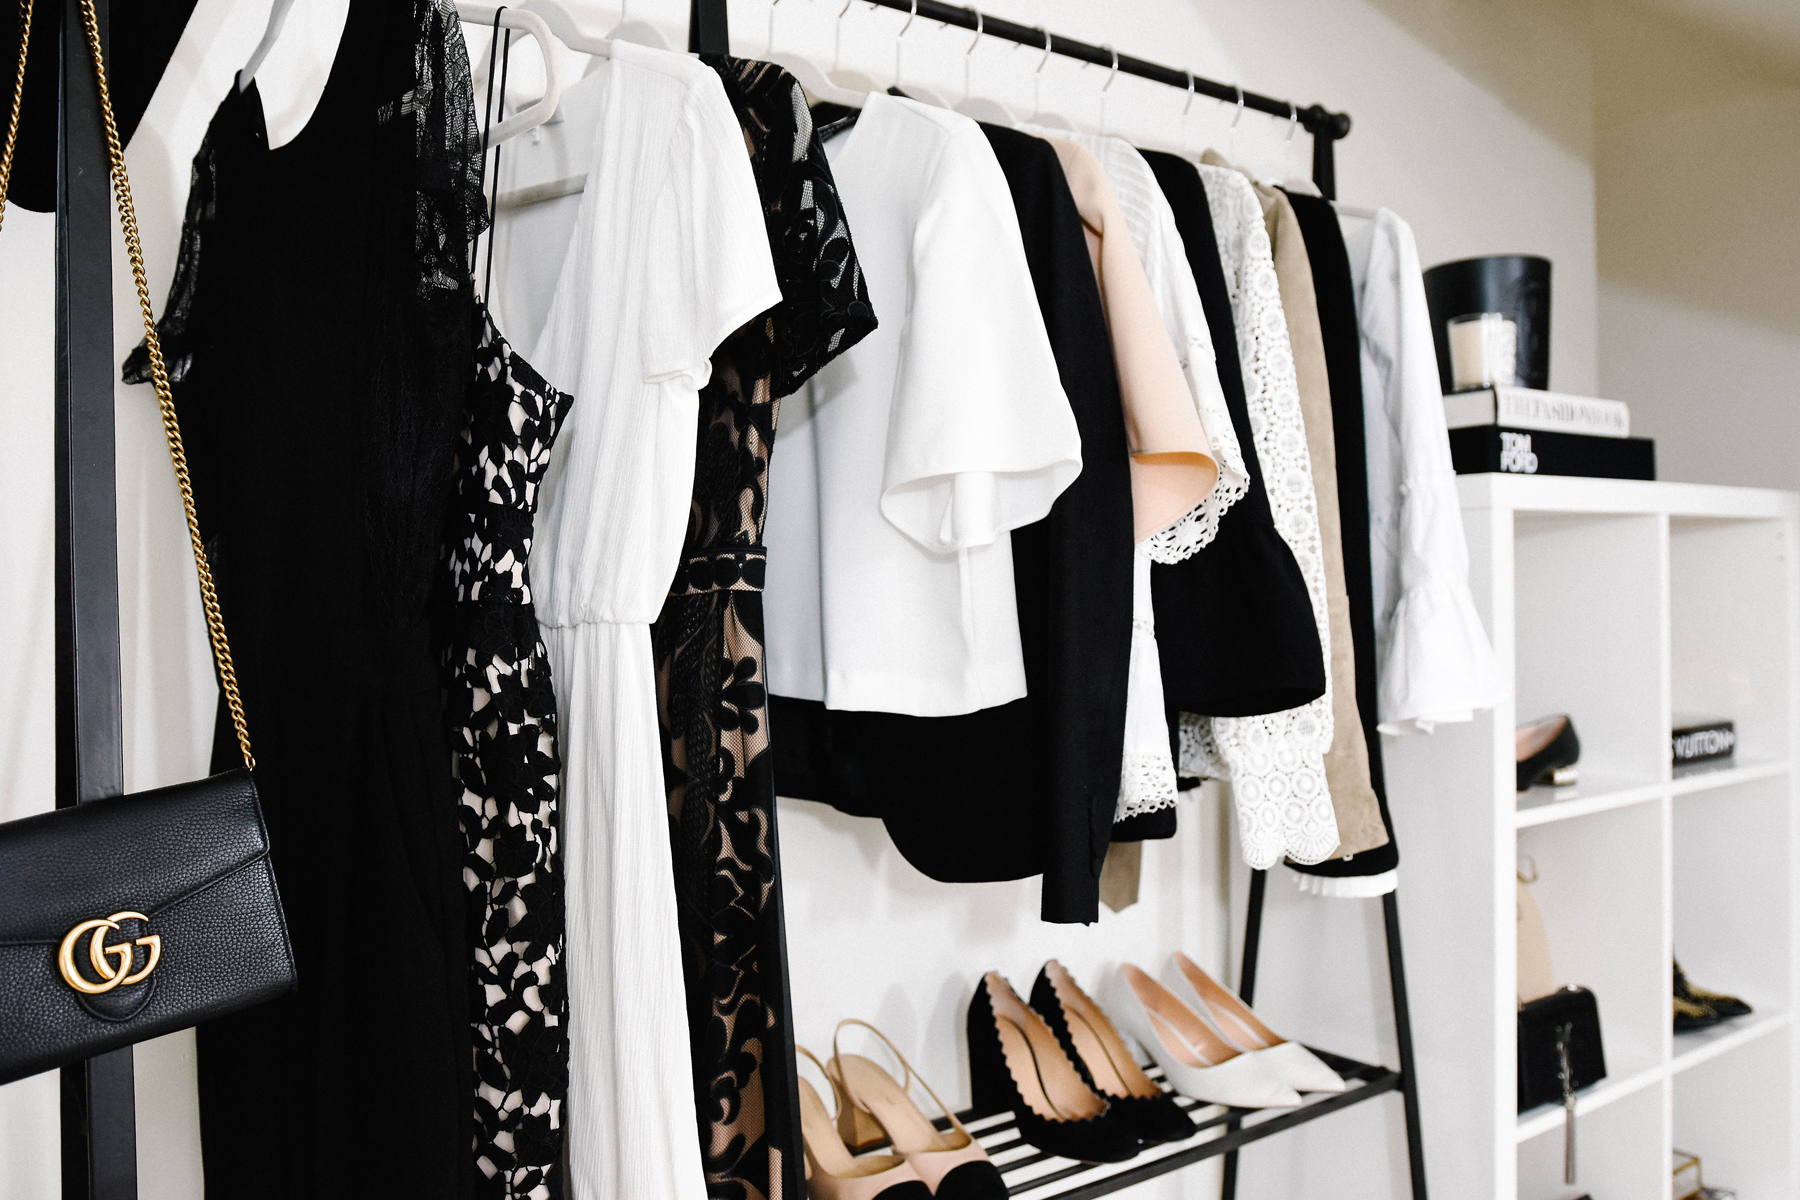 Tales from the dressing room | organised closet